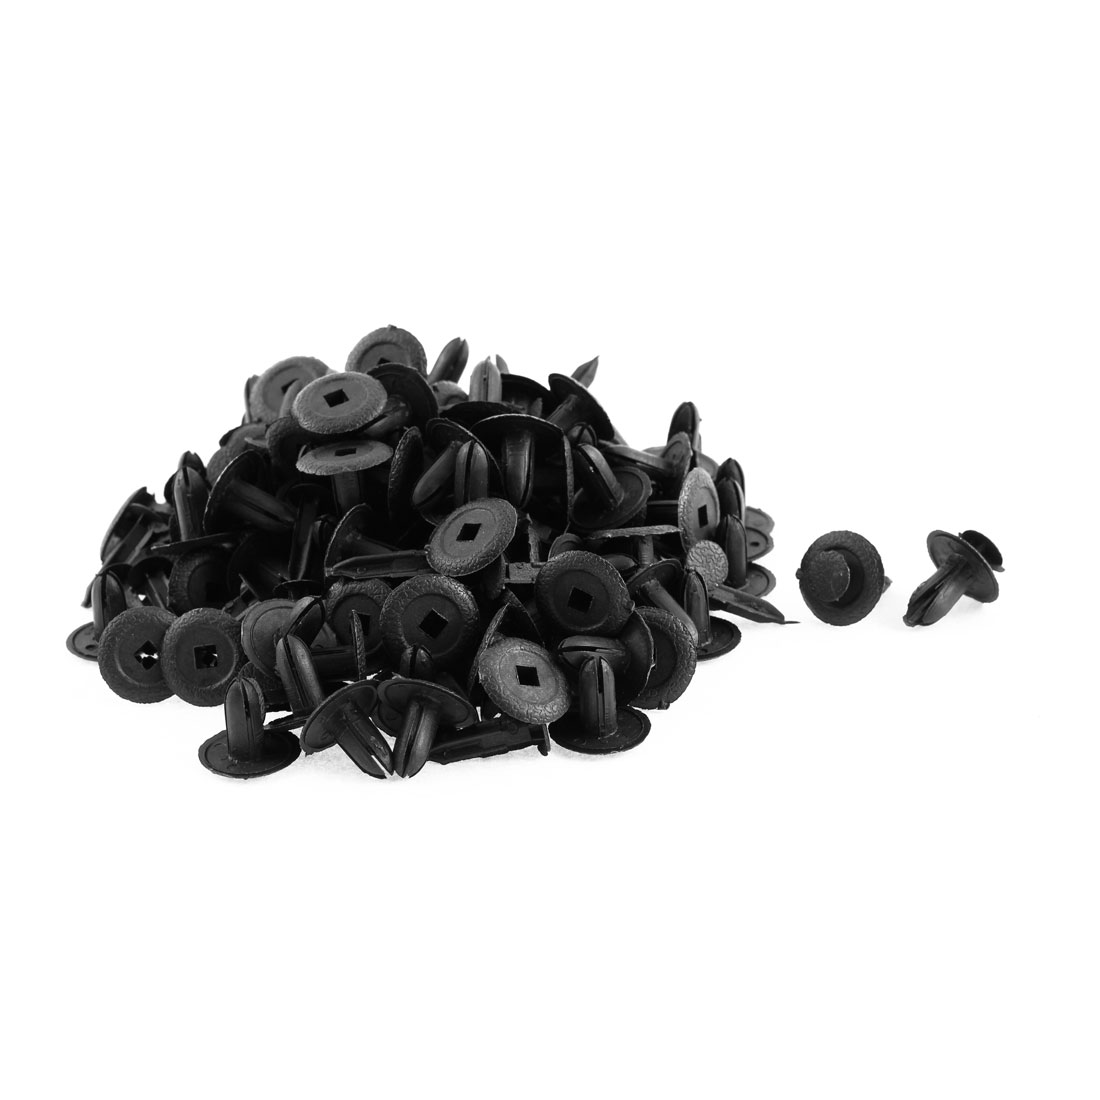 100 Pcs 18mm x 7mm Black Plastic Rivet Bumper Lining Trim Panel Retainer Fastener Clips for Mazda